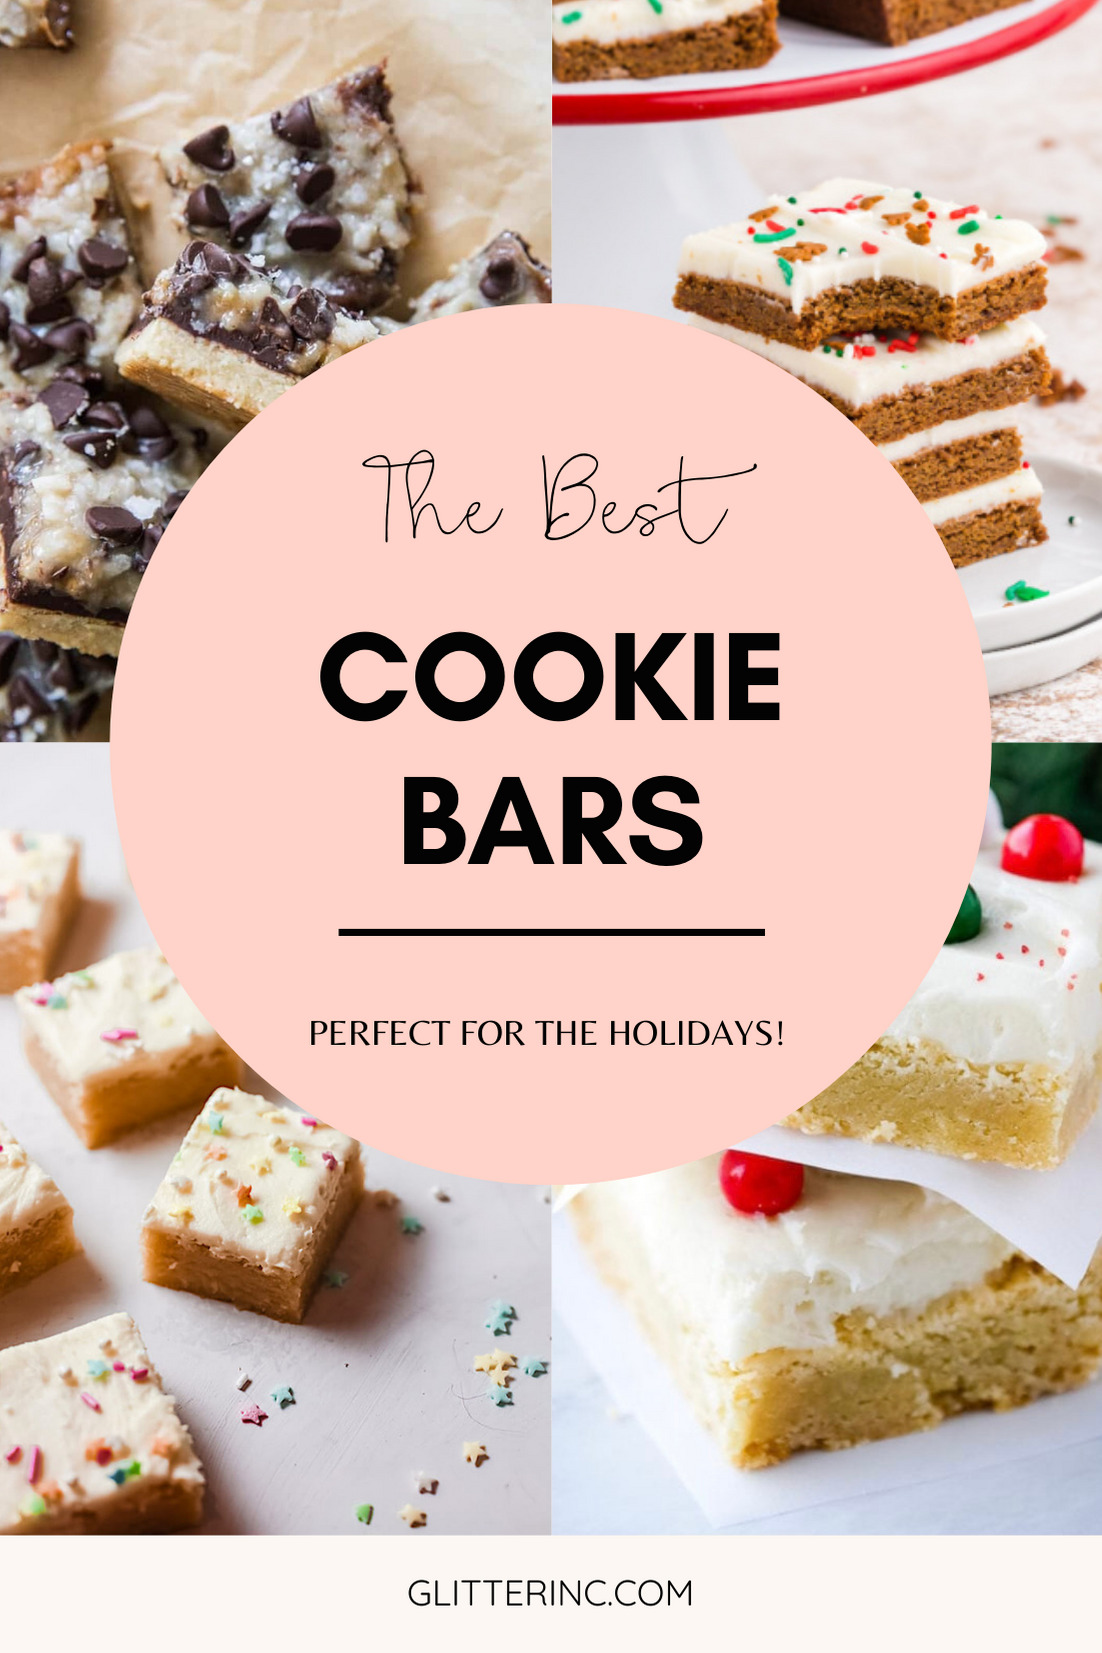 Looking to bake up a batch of delicious cookies but short on time? Here are more than 40 recipes for the best easy cookie bars! Bonus: cookie bars are perfect to bake during the holidays, especially when you want to bake Christmas cookies in big batches! | @glitterinclexi | GLITTERINC.COM